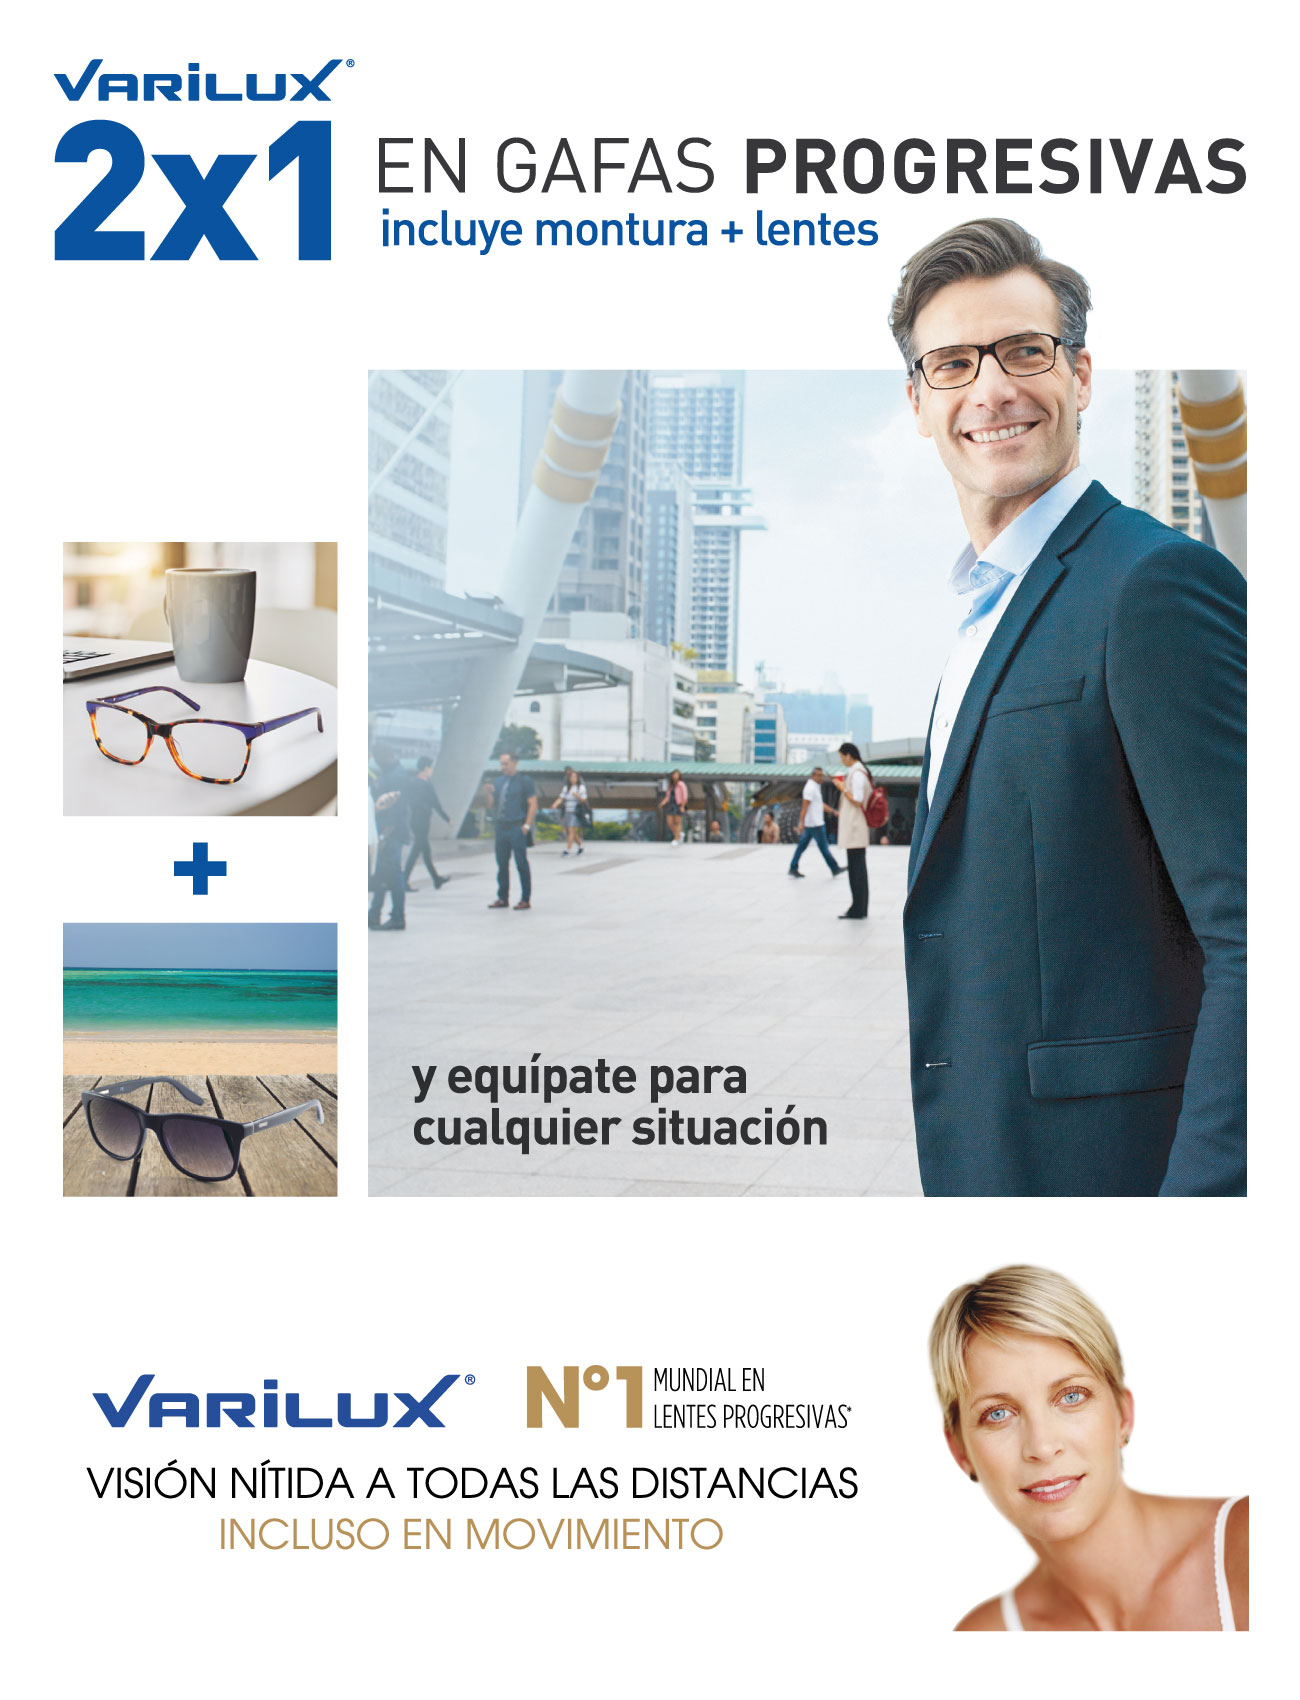 Optoclinic La Pau Altea 2x1 Varilux